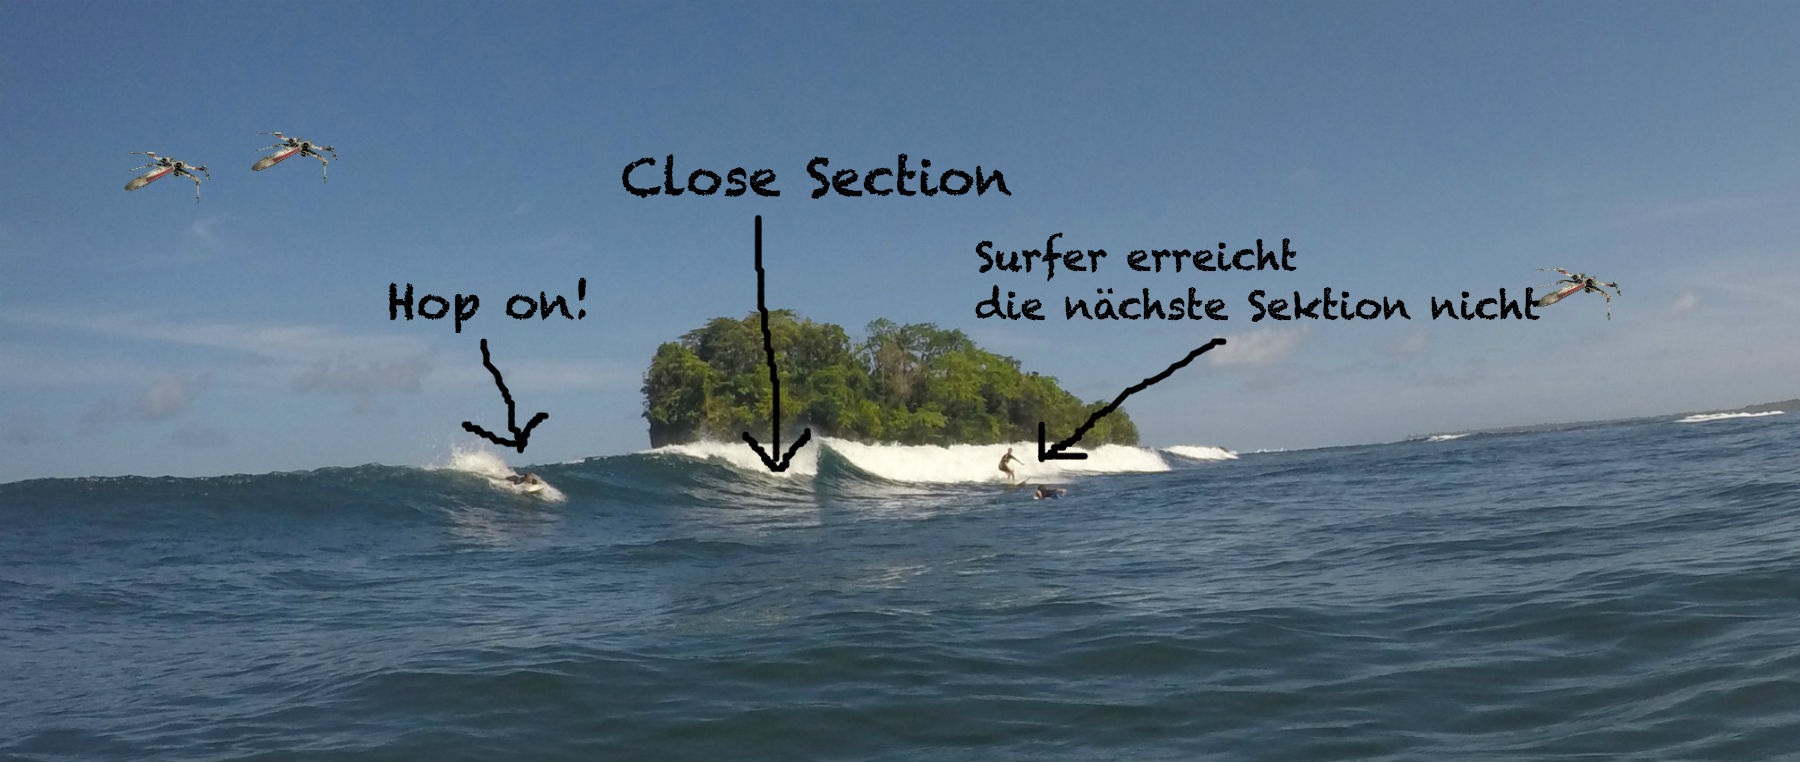 Close Sections beim Surfen